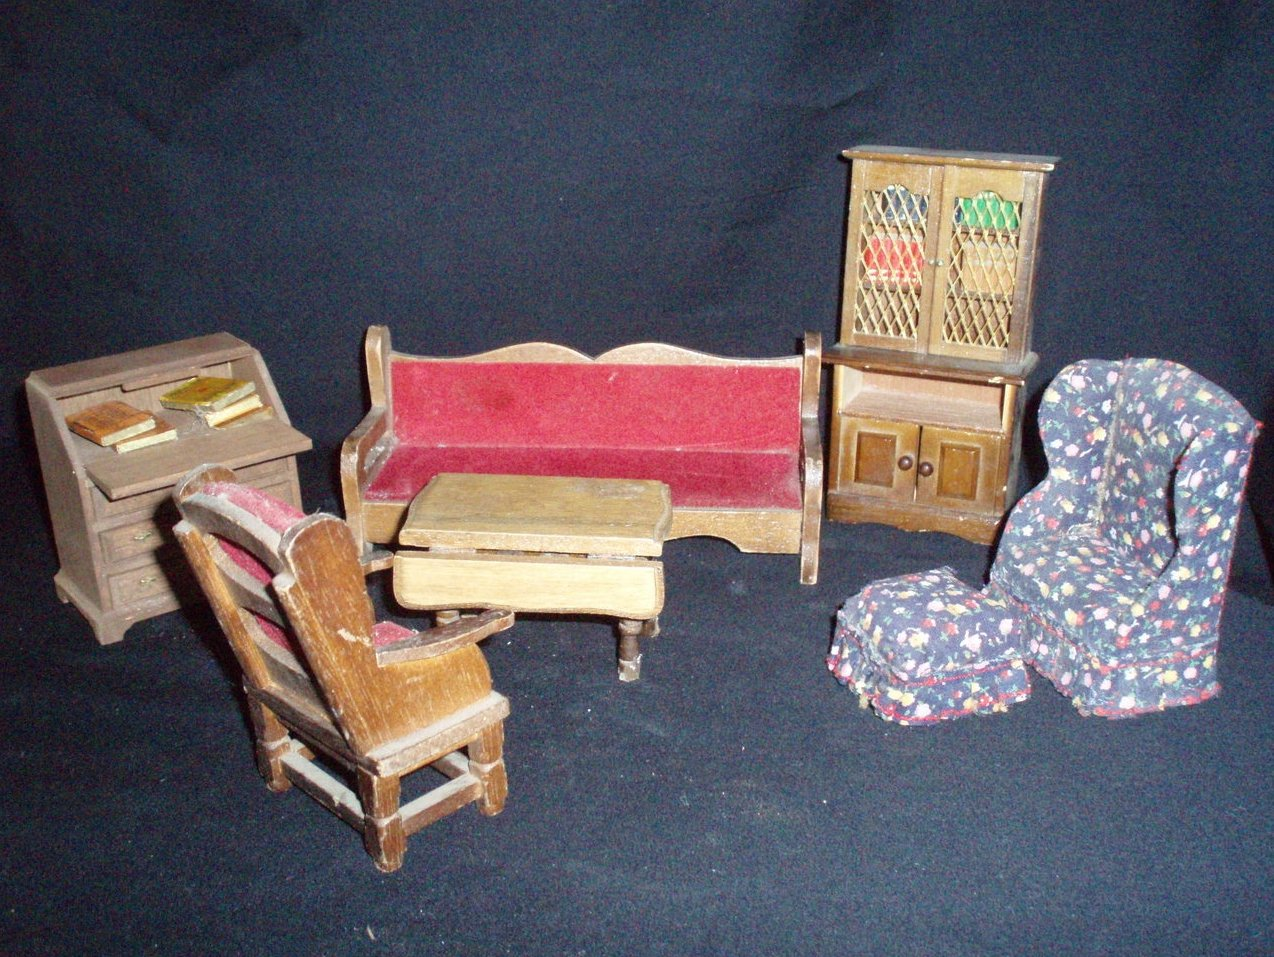 dollhouse furniture miniature lot den study living room VTG